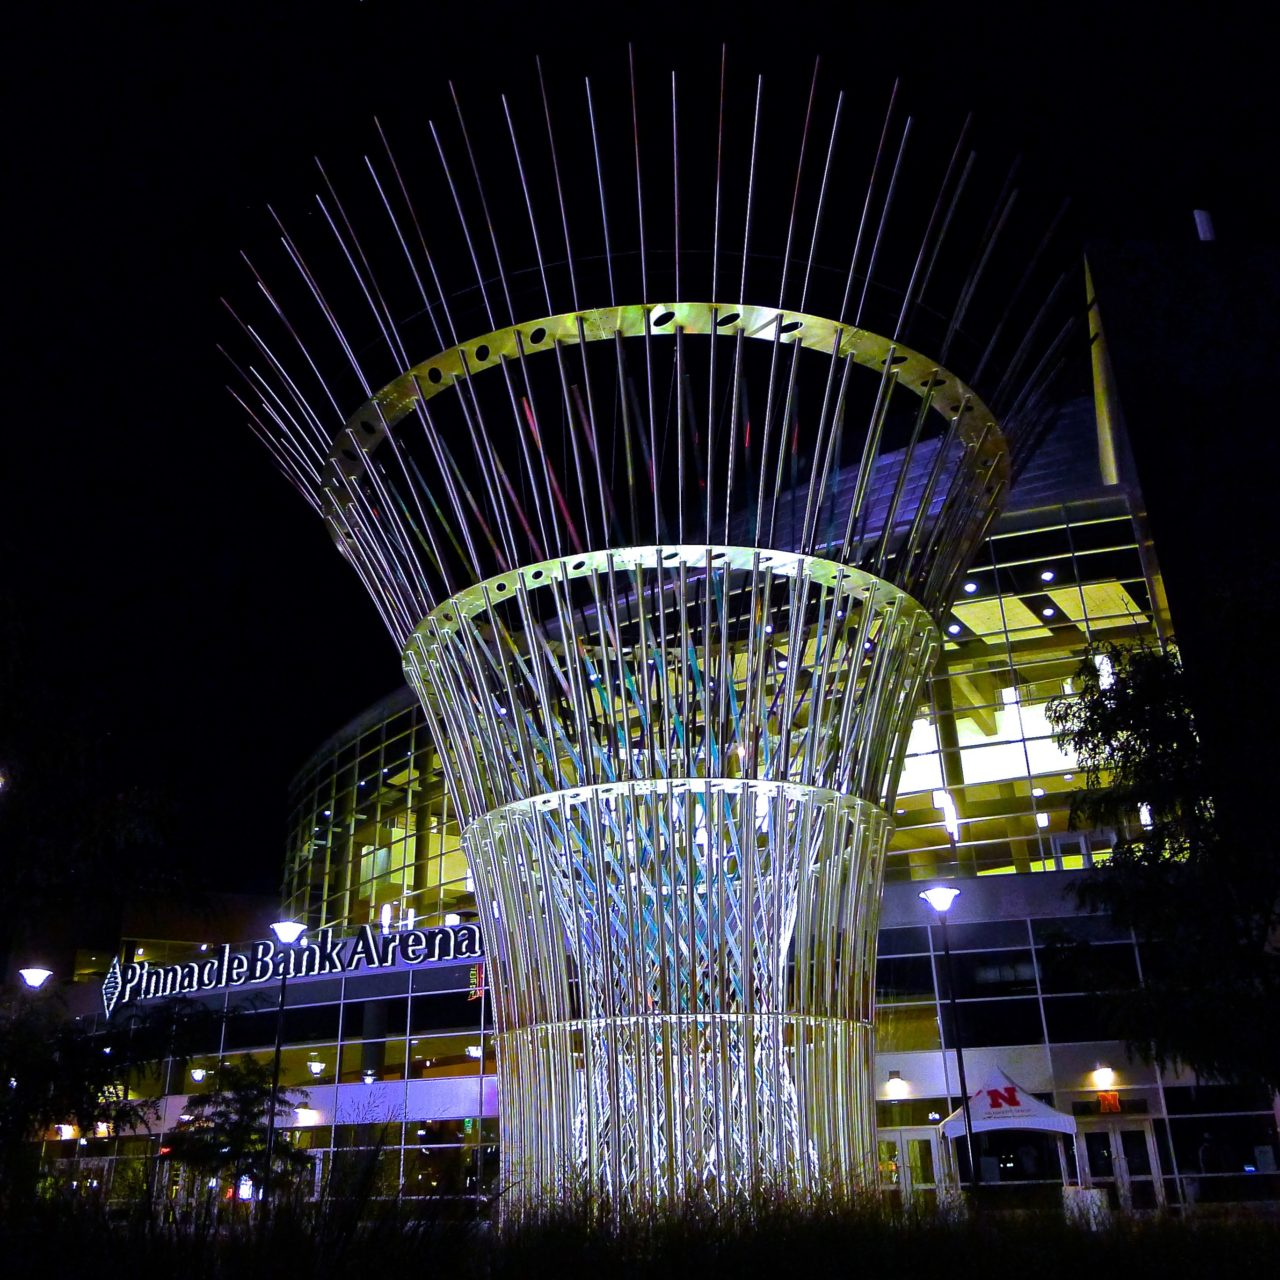 Harvest monumental public sculpture in Lincoln, Nebraska with night lighting in the plaza in front of the Pinnacle Bank Arena amplifies the stainless steel and dichroic glass structural tension elements crisscrossing in the center of the sculpture. / image 1